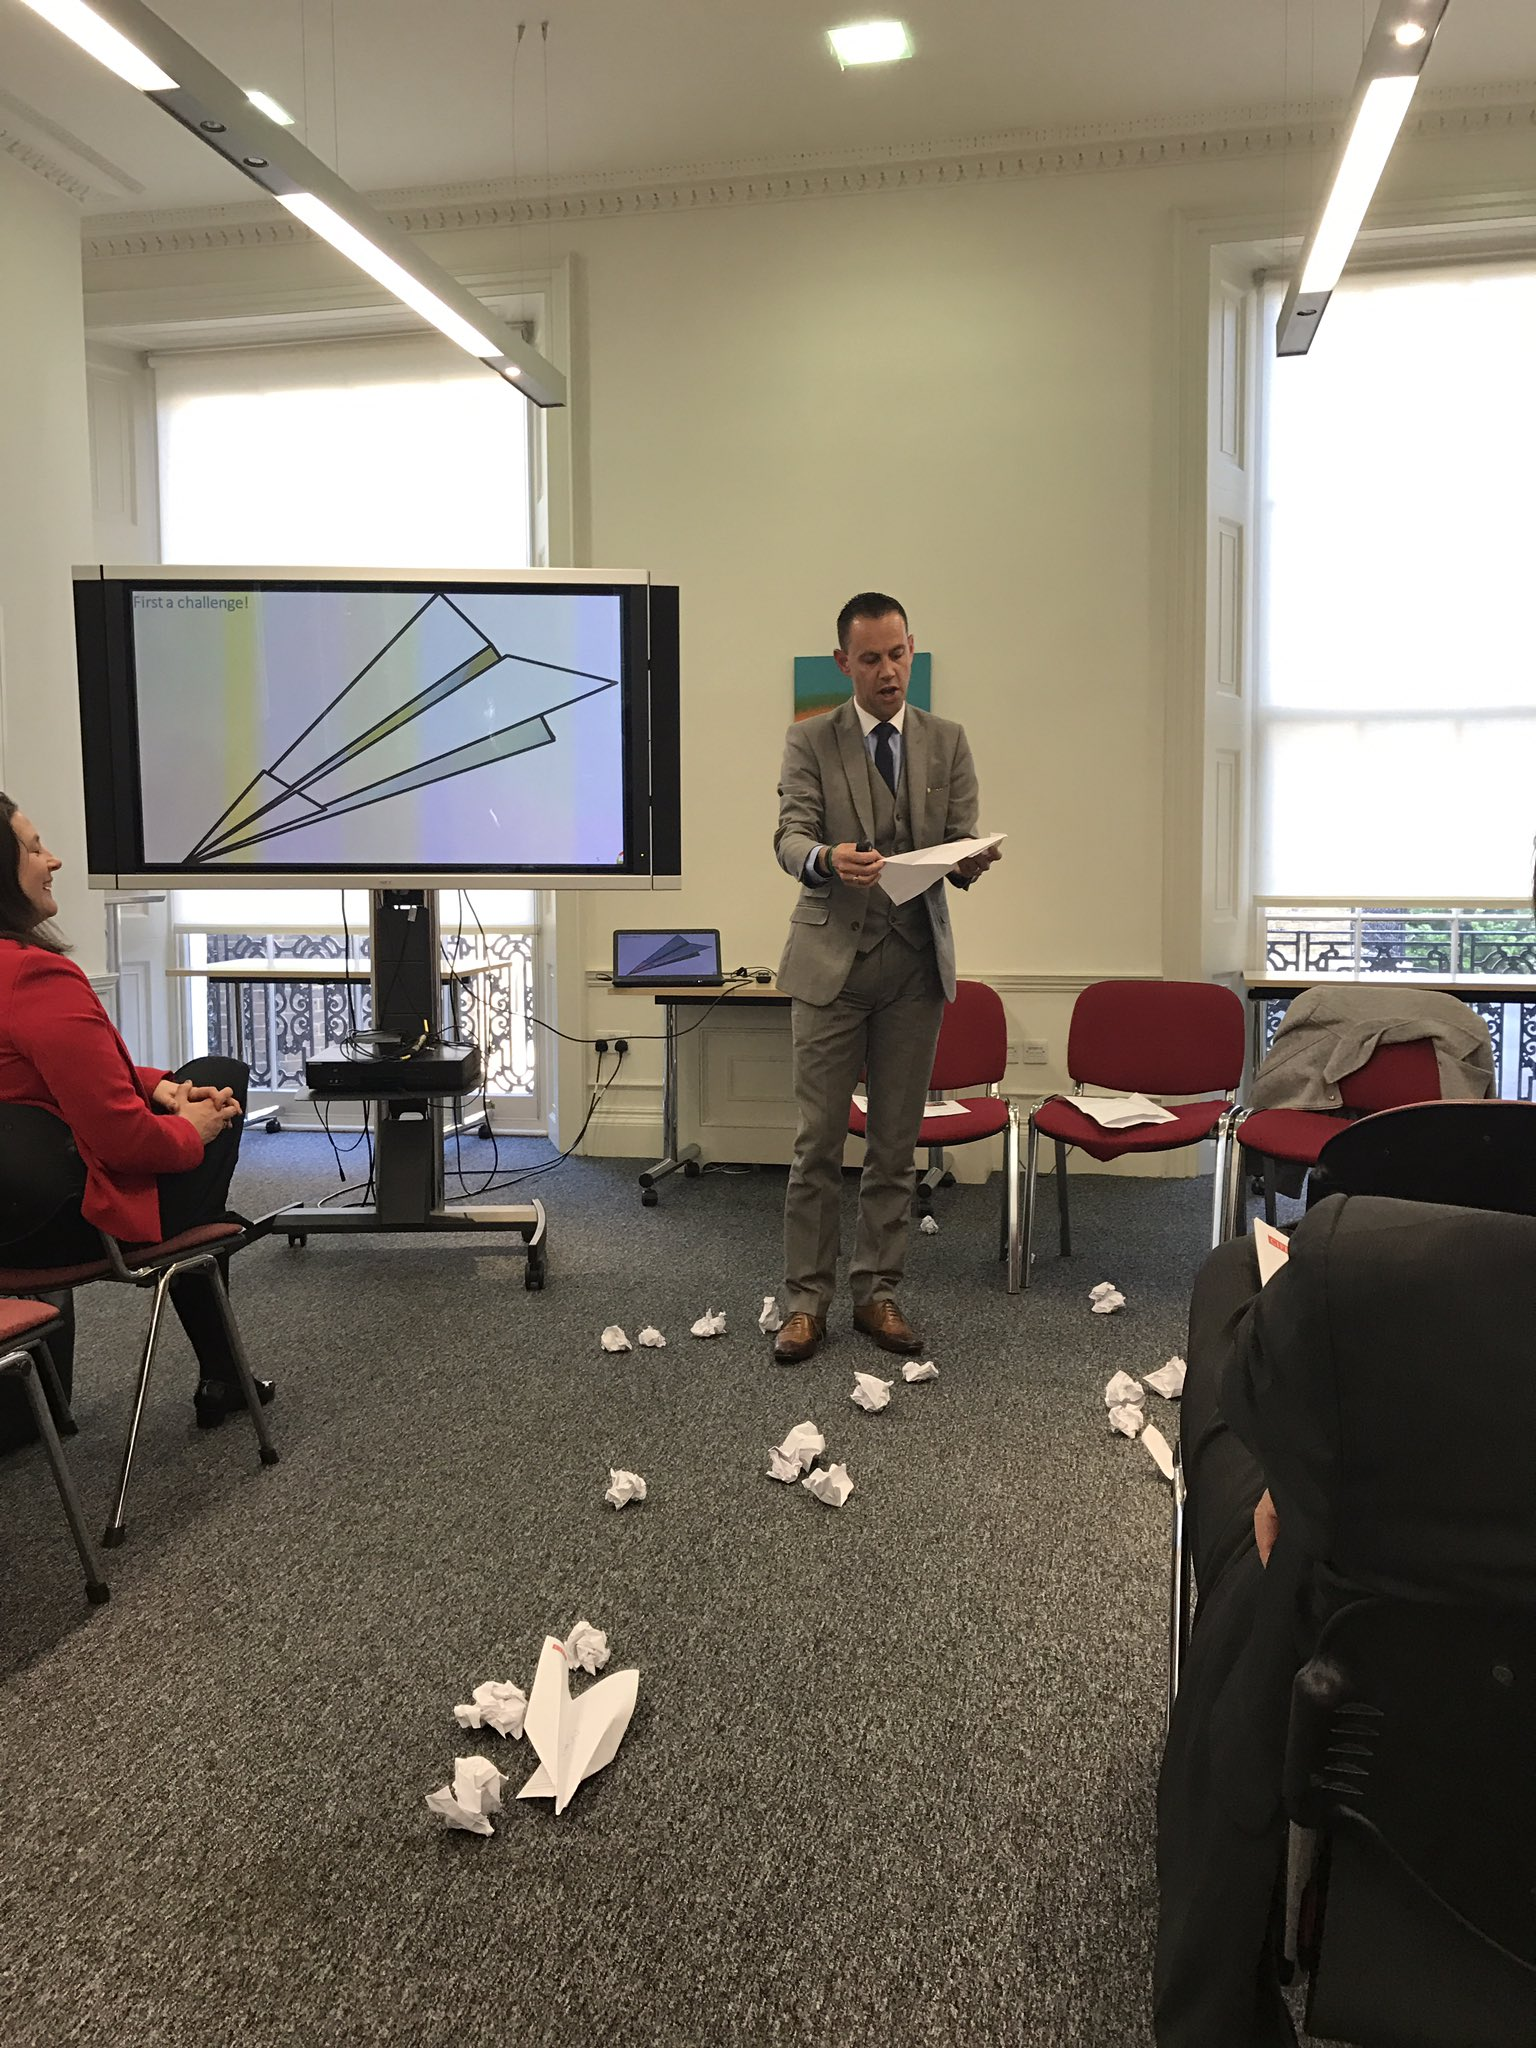 . @colinminto kicking off with an interactive task! Audience asked to jot down words associated with mental health (and throw them) #CIPRMH https://t.co/TEBErET8SC